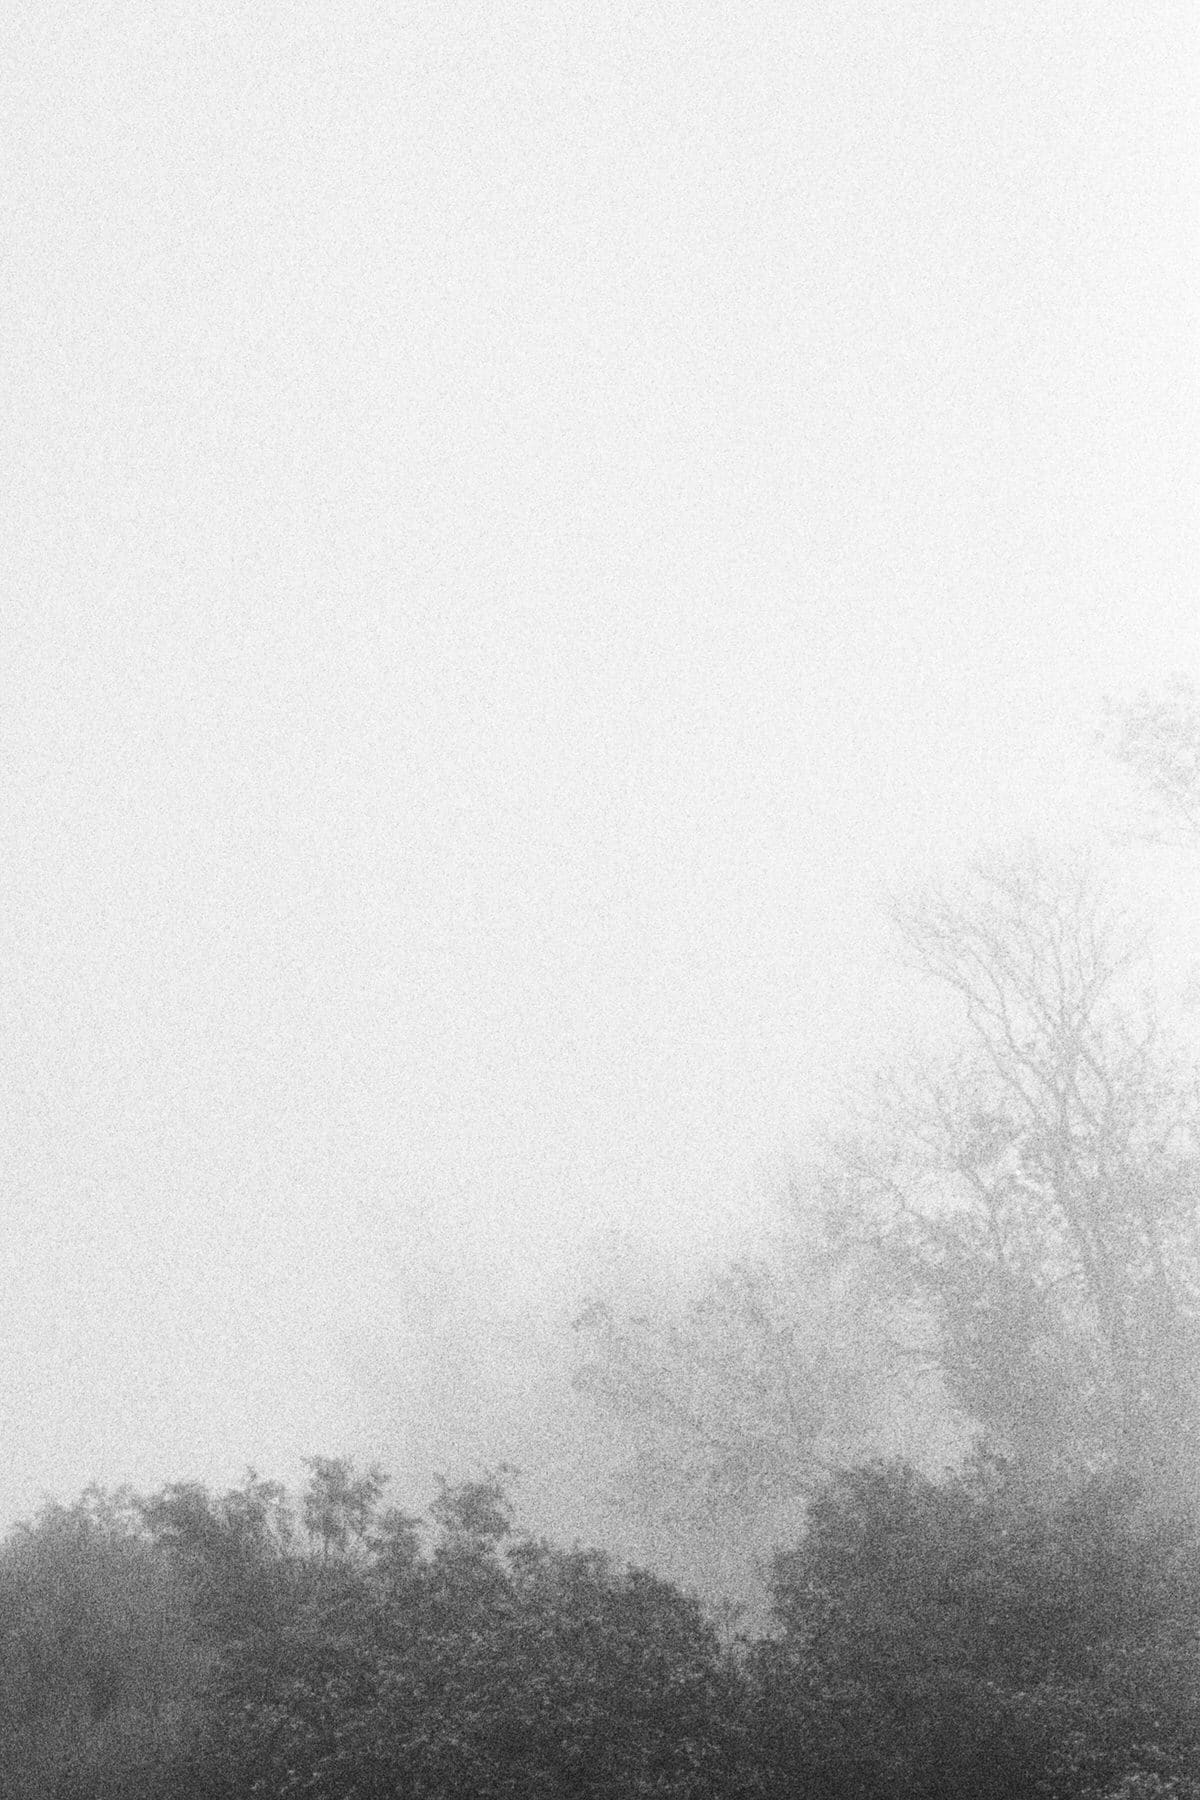 Into-the-fog-black-and-white-fine-art-film-photography-by-Studio-L-photographer-Laura-Schneider-_002